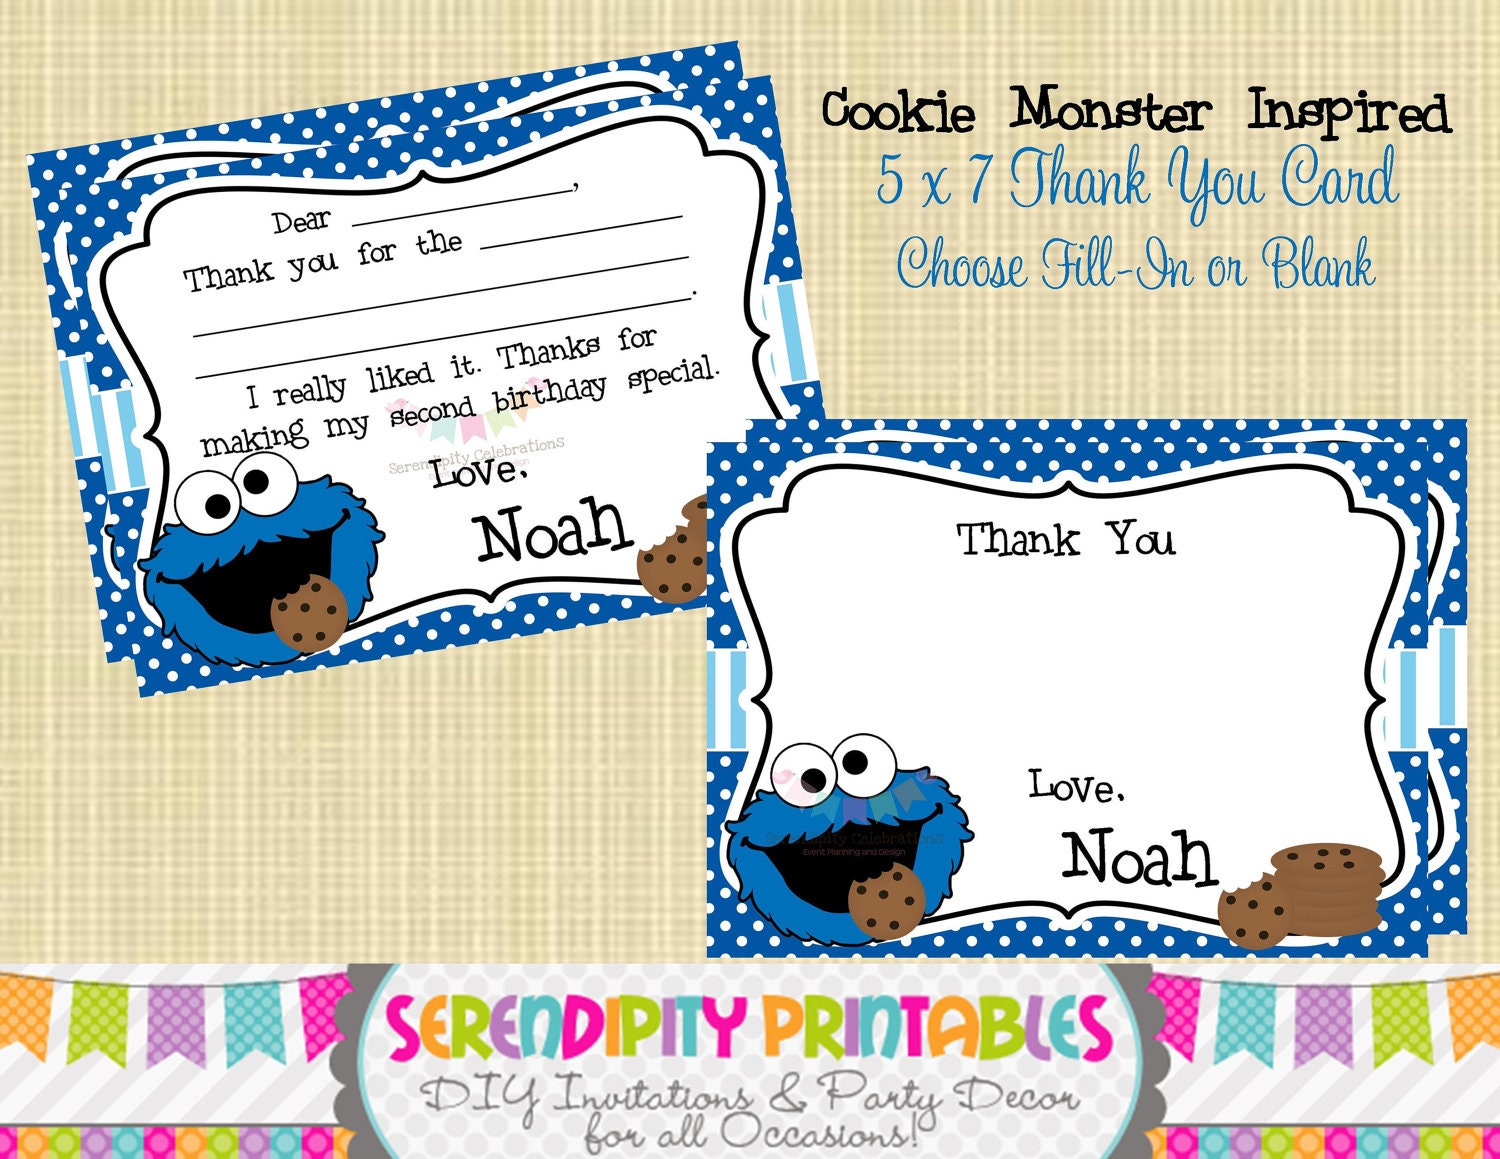 Cookie Monster Inspired Collection: Printable Thank You Card